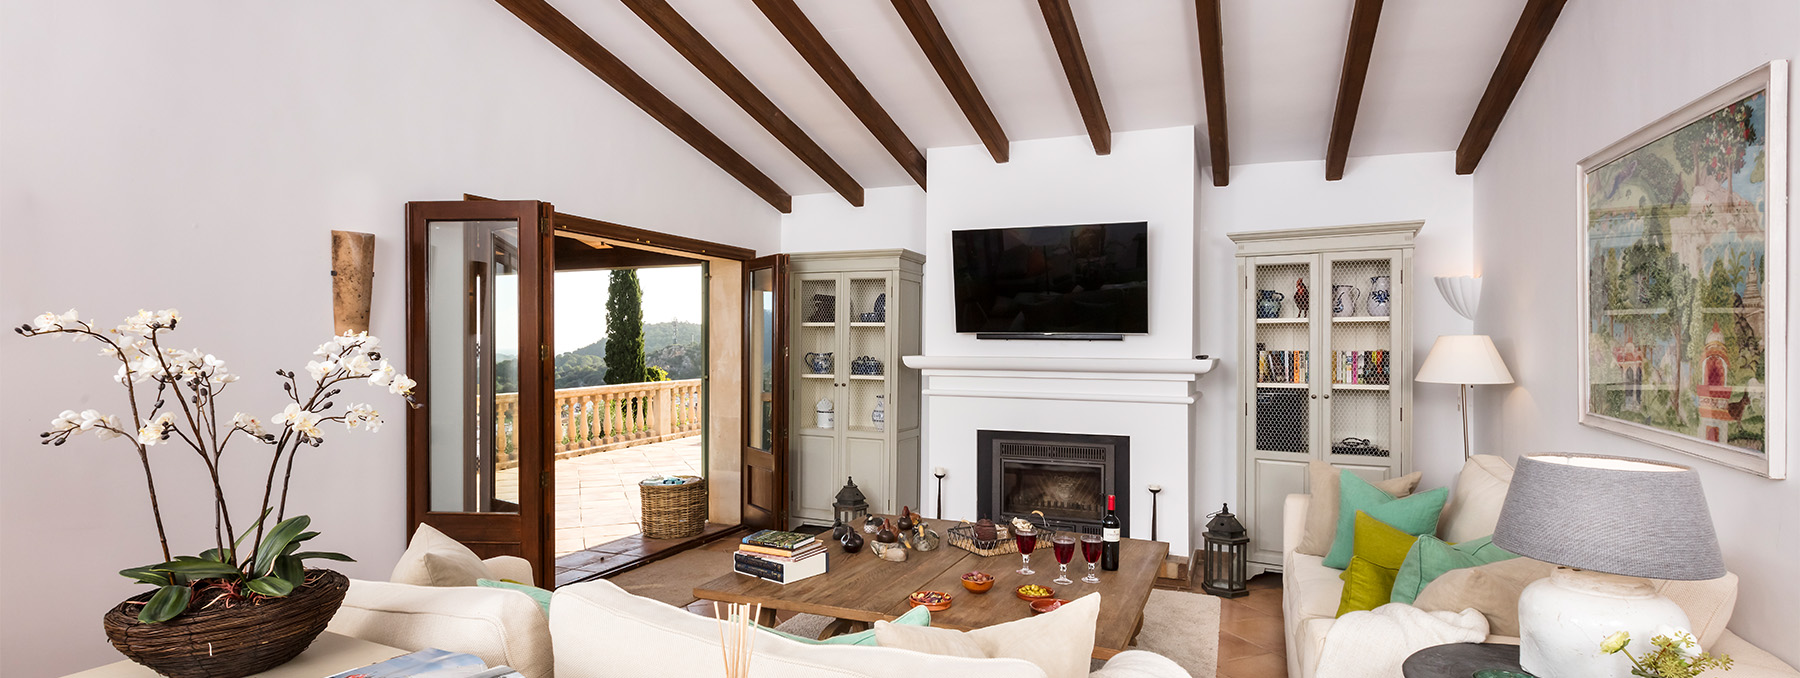 Find Classic Spanish Charm At Inspirato S Villa Ladera Inspirato In The Details